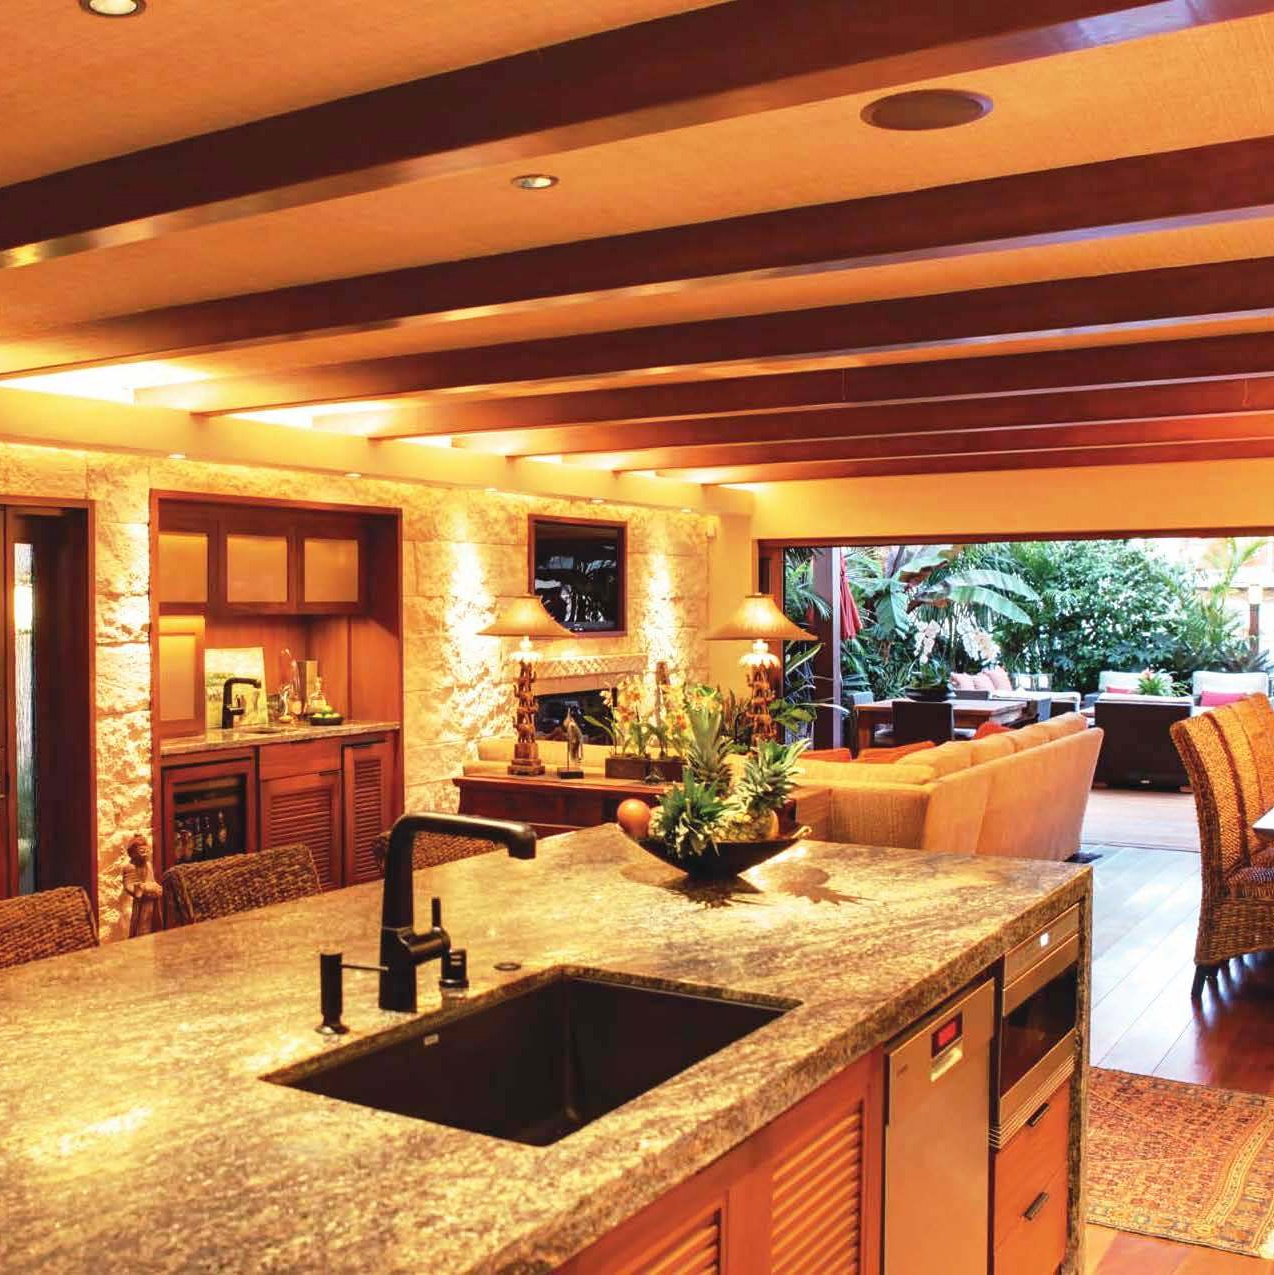 Balinese Kitchen Design A Visit To A Beautiful Balinese Style Waterfront Home After